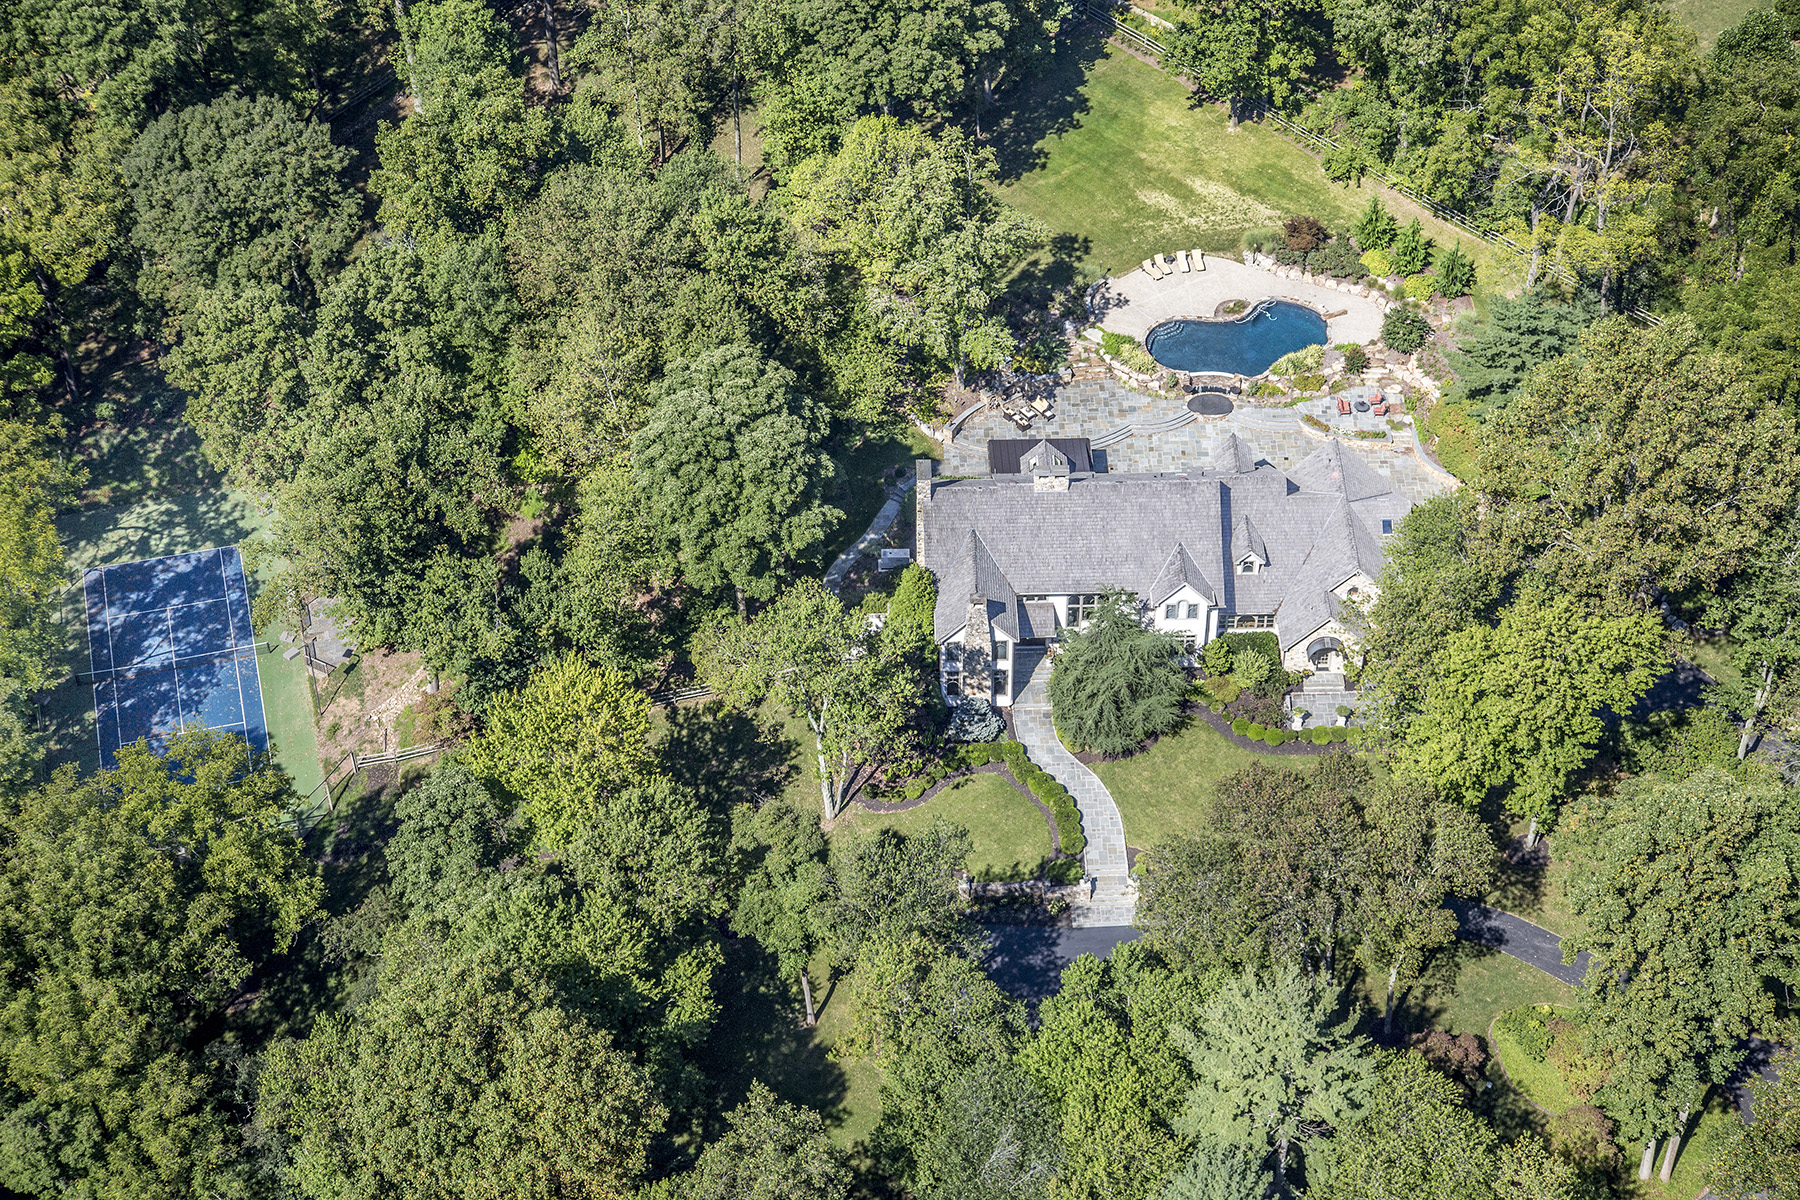 Single Family Home for Sale at Glenmoore Estate 31 Basset Hunt Lane Glenmoore, Pennsylvania 19343 United States